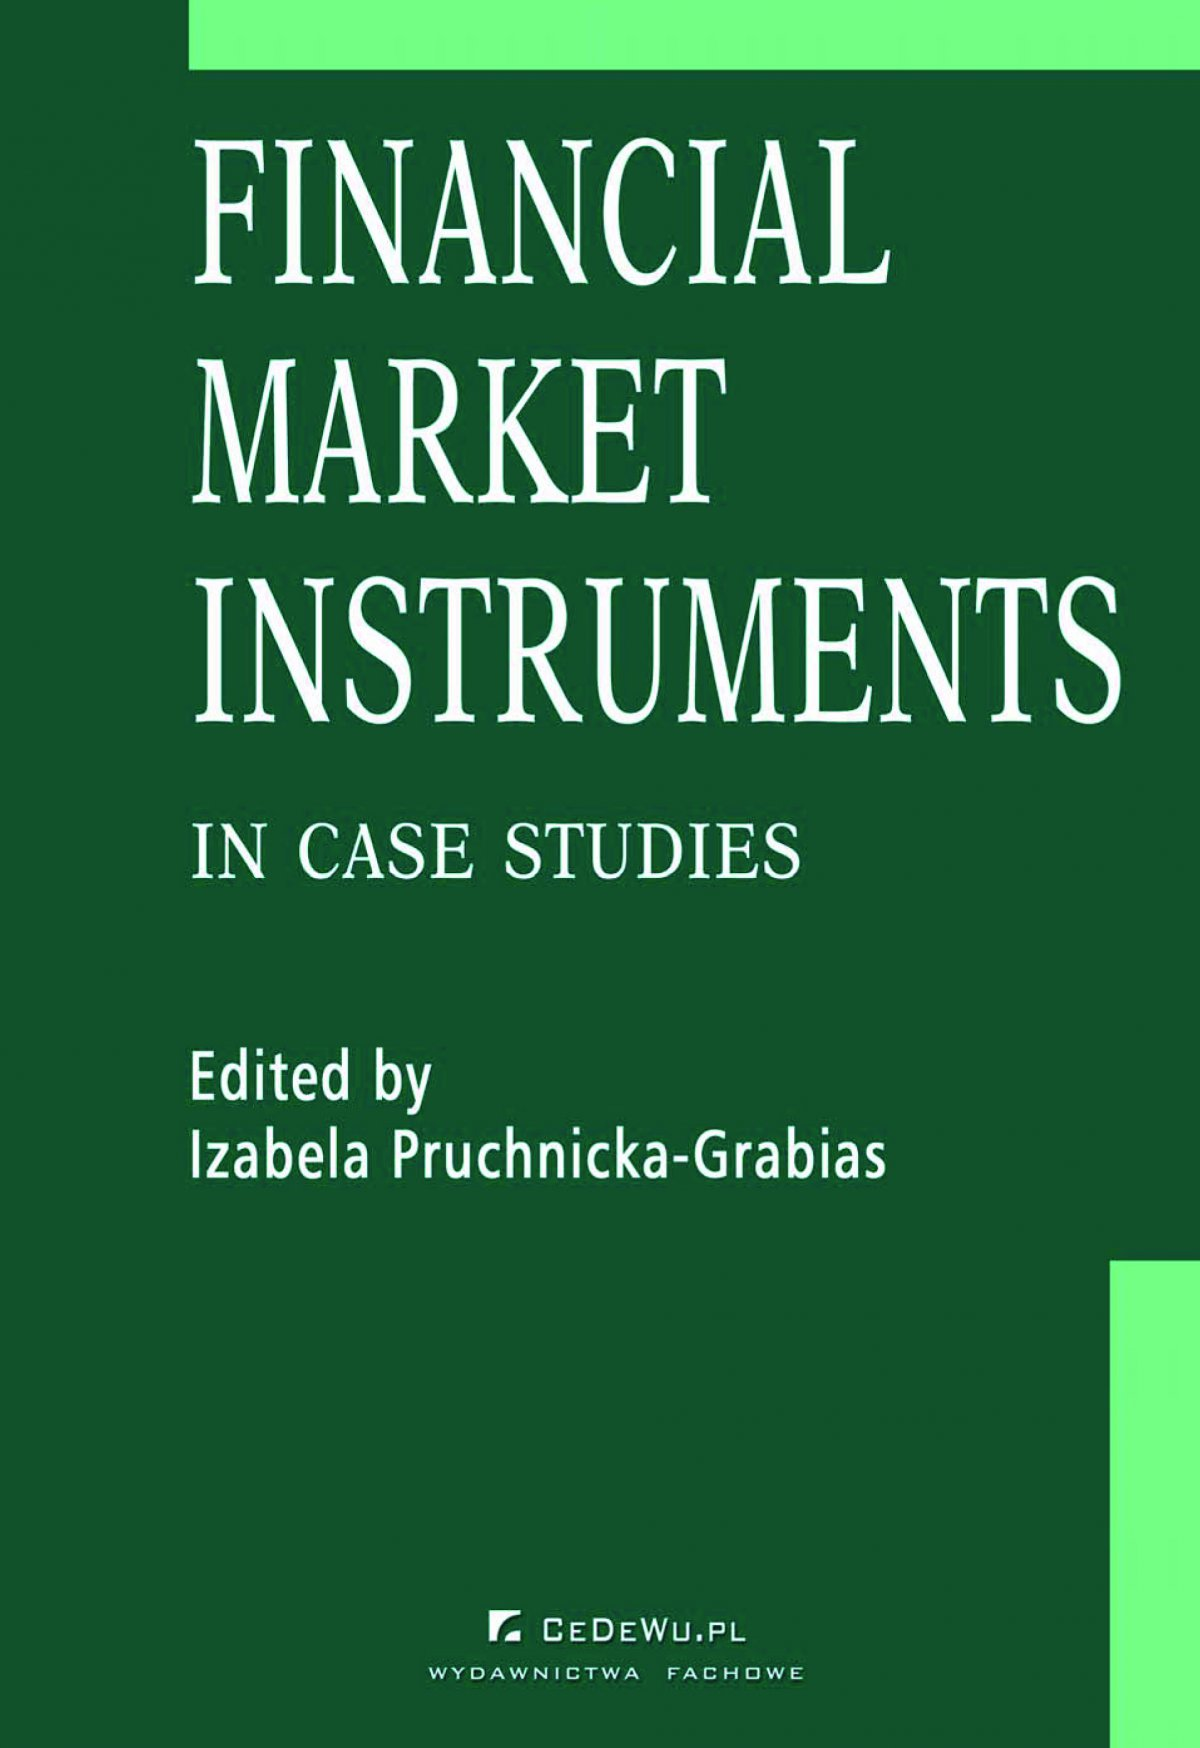 Financial market instruments in case studies - Ebook (Książka PDF) do pobrania w formacie PDF